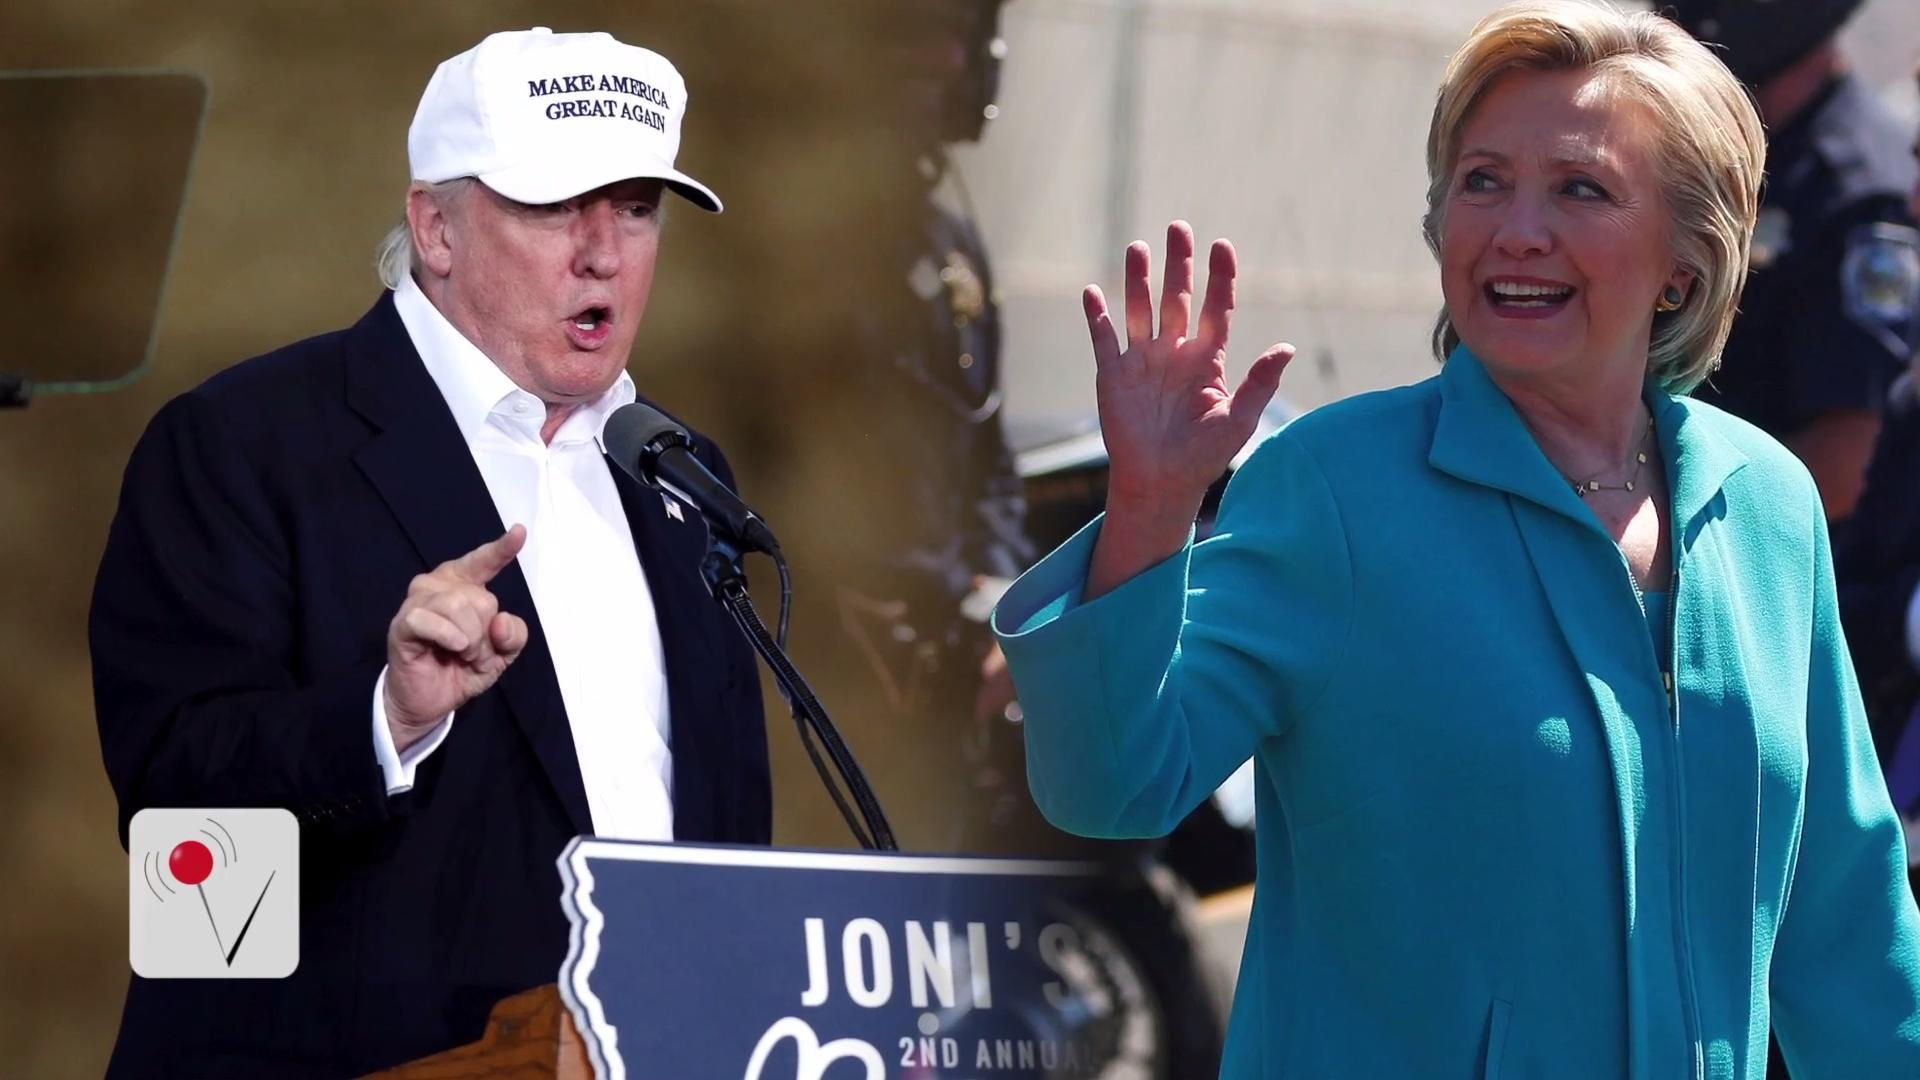 Clinton's Lead Over Trump Narrows to 6 Points